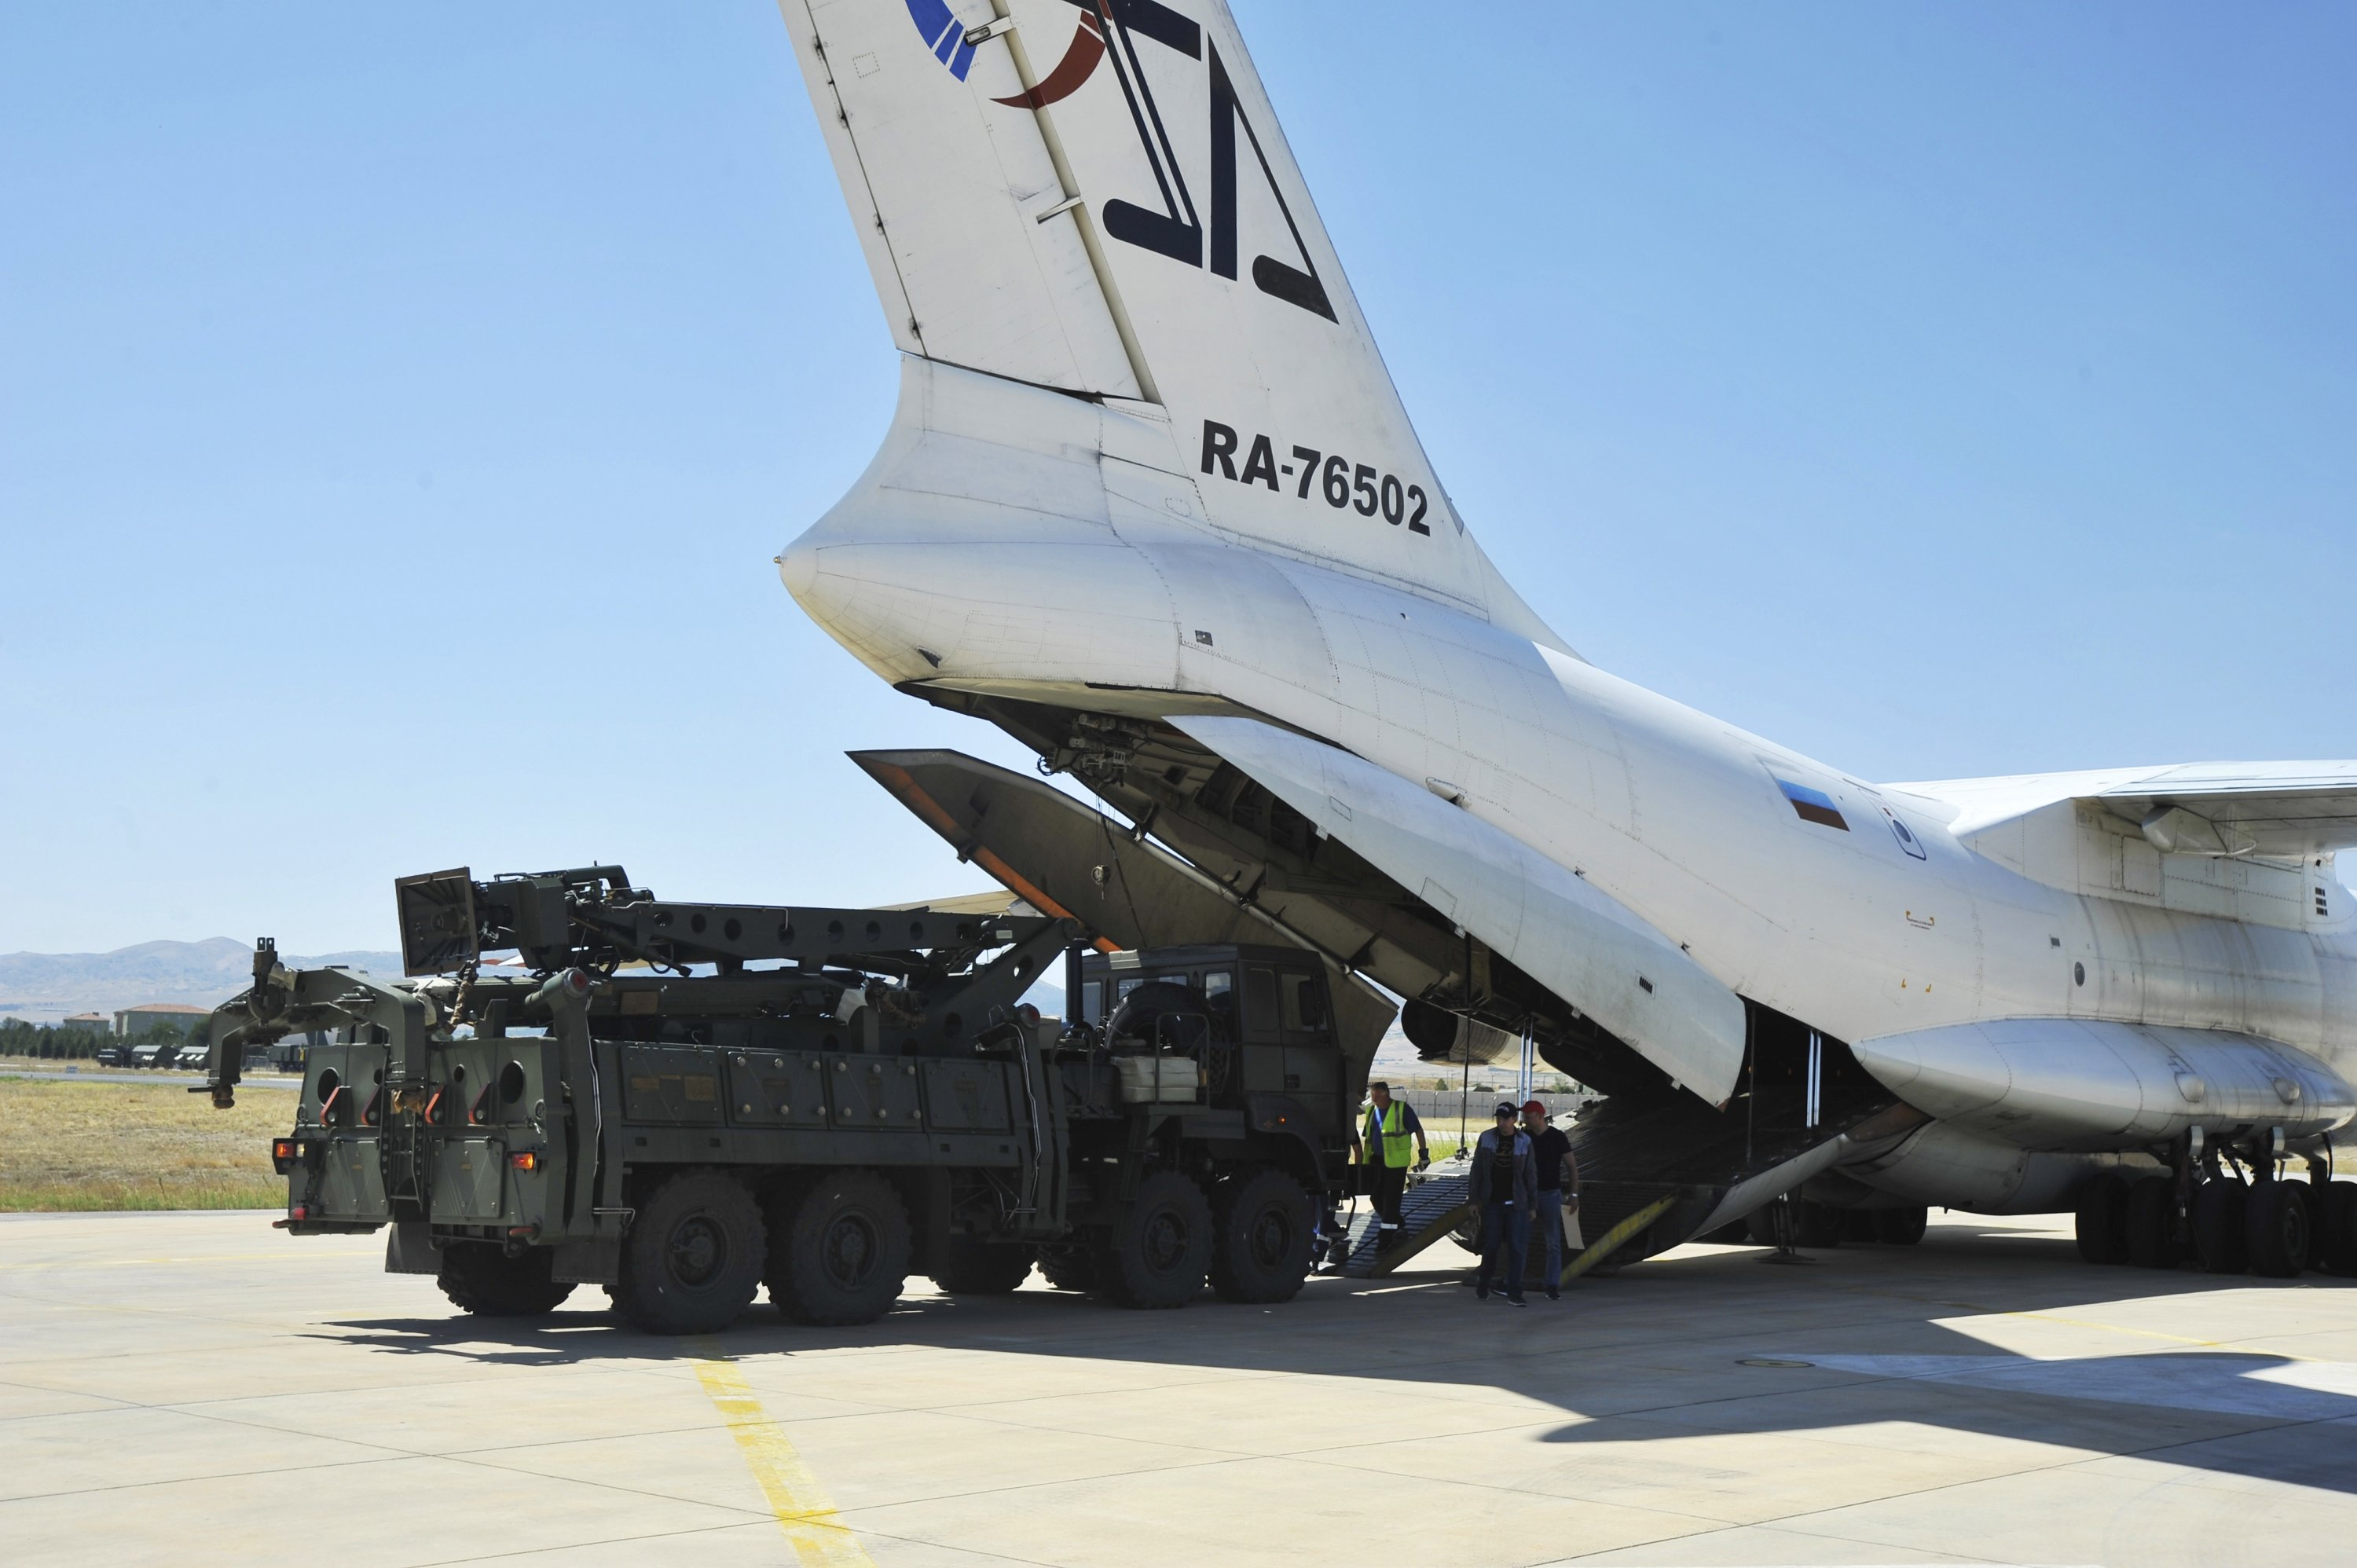 A Russian transport aircraft, carrying parts of the S-400 air defense systems, lands at Mürted military airport outside Ankara, Turkey, Aug. 27, 2019. (AP Photo)